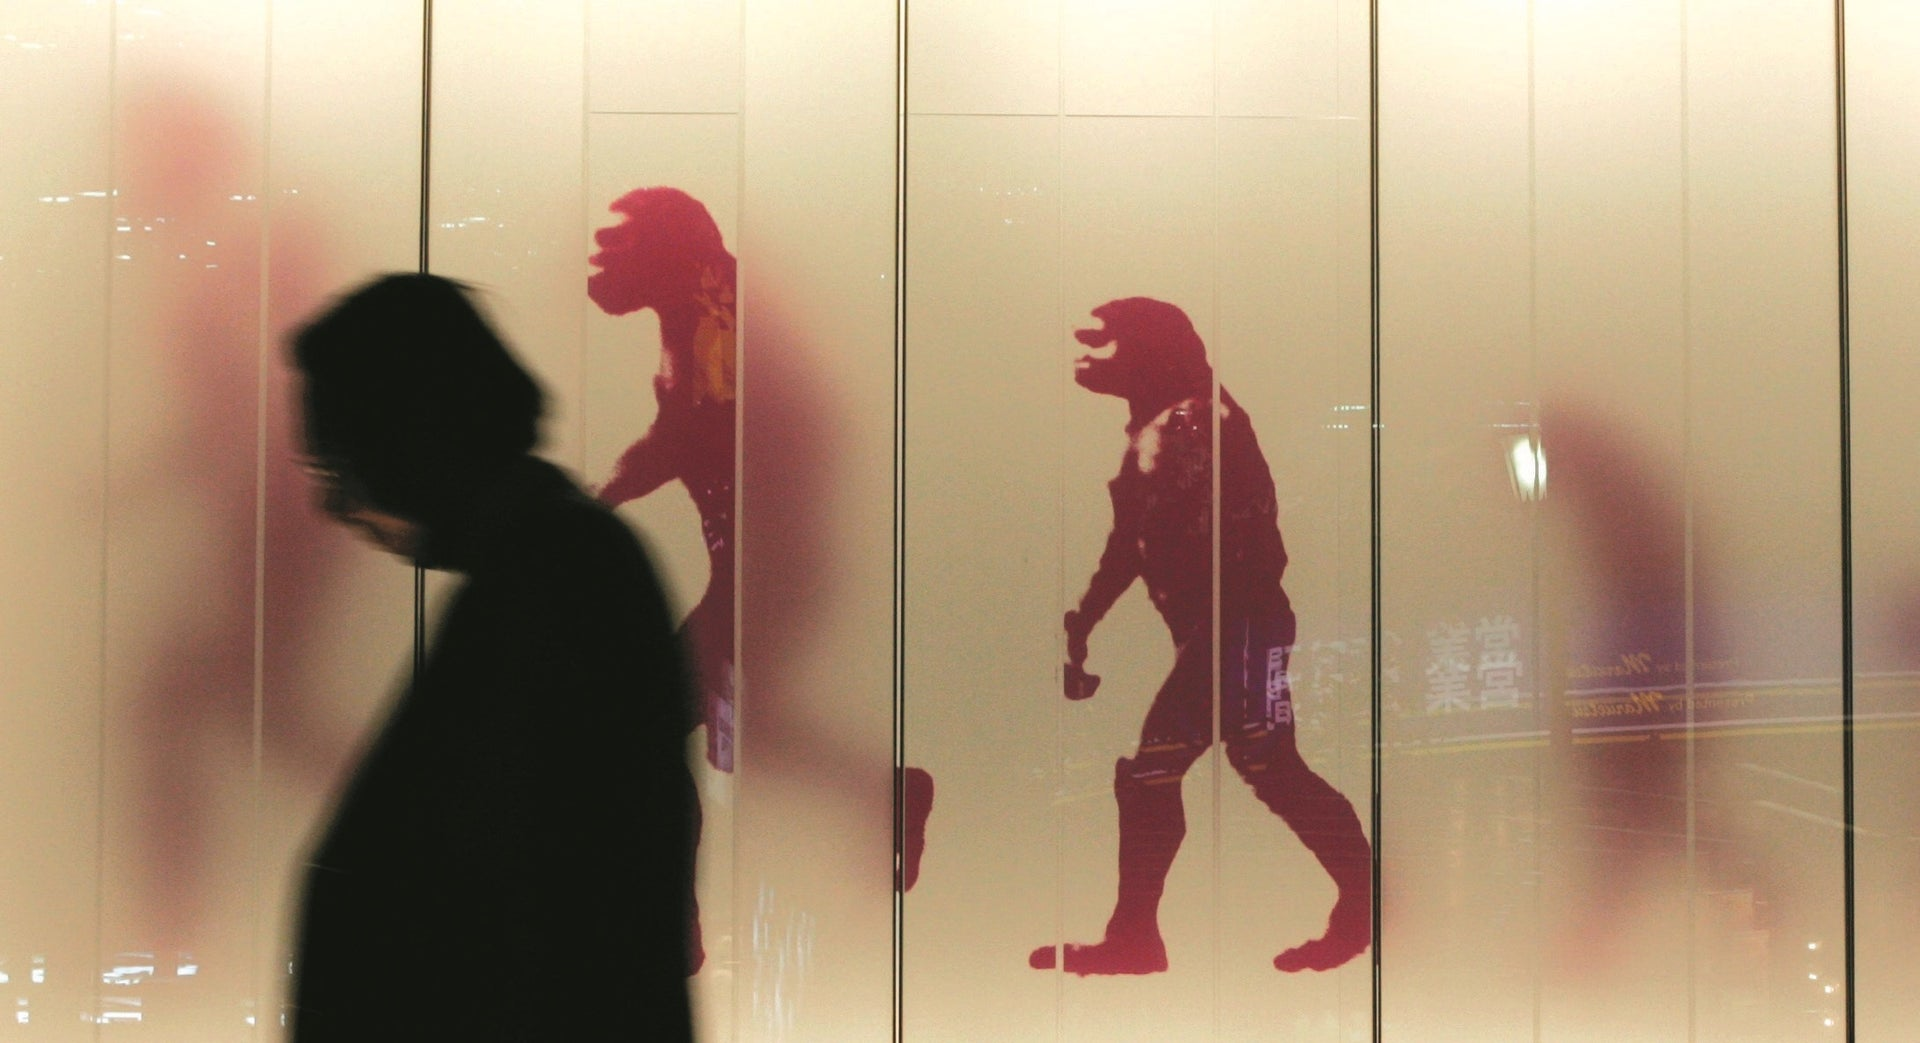 Human evolution is a lot messier than we thought